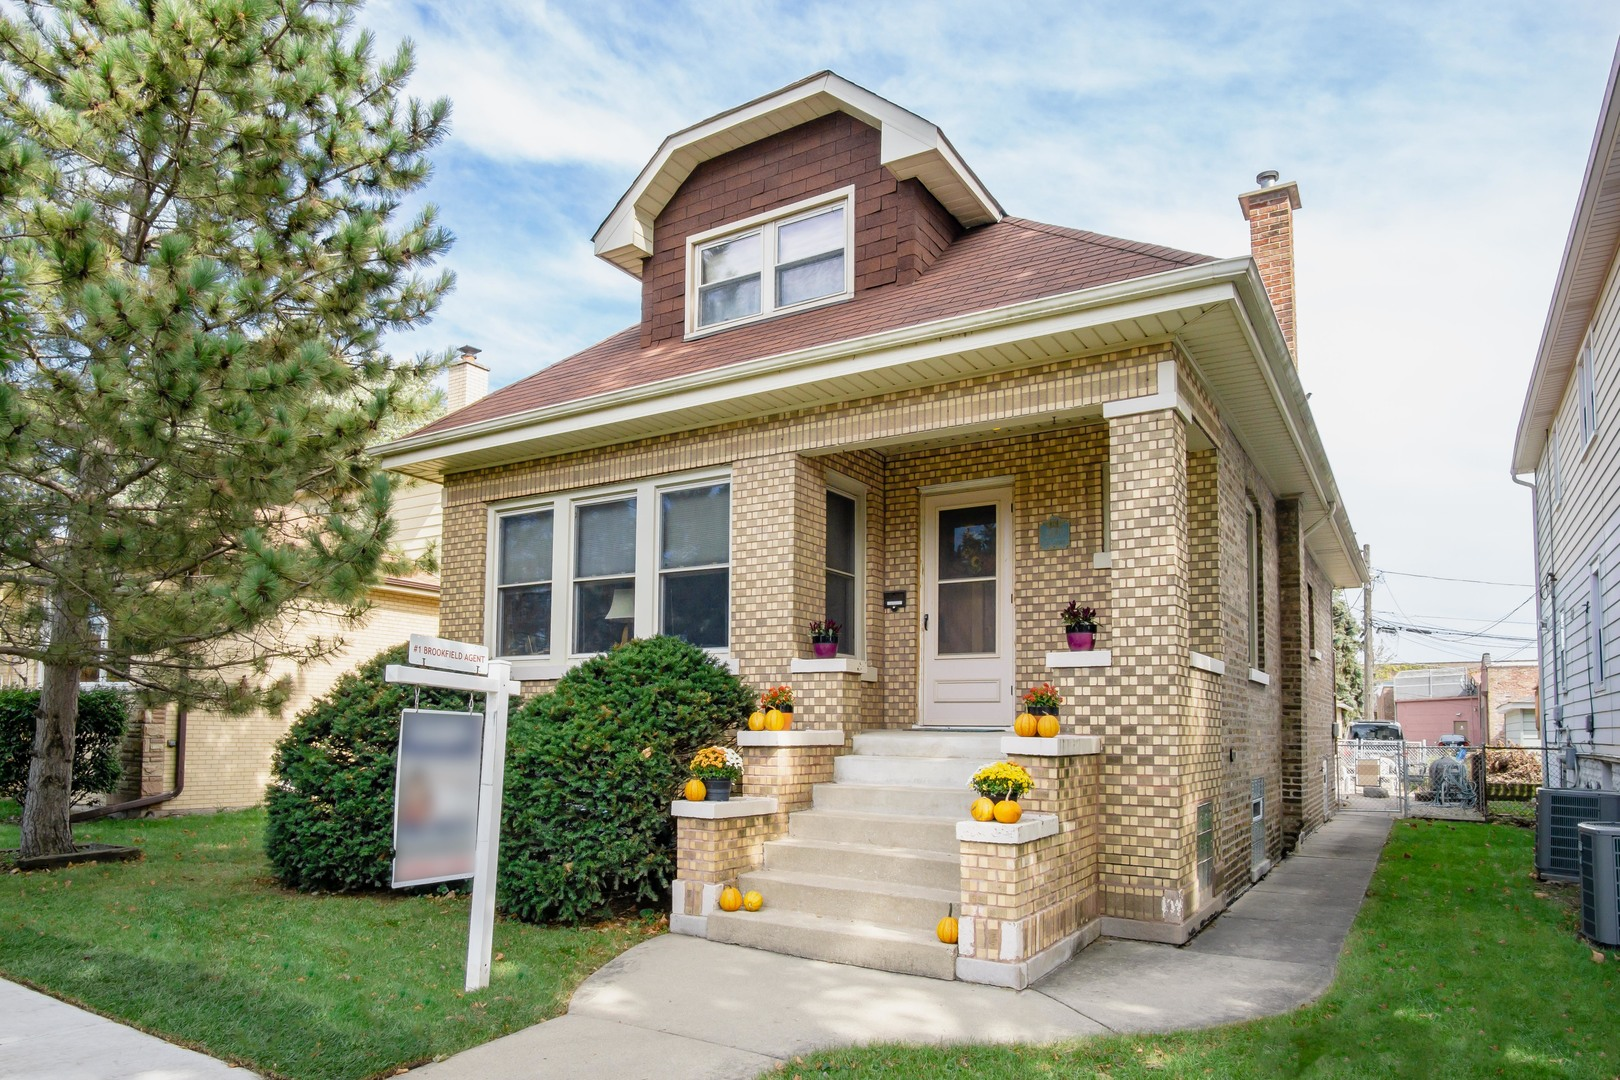 Property for sale at 3809 Park Avenue, Brookfield,  Il 60513